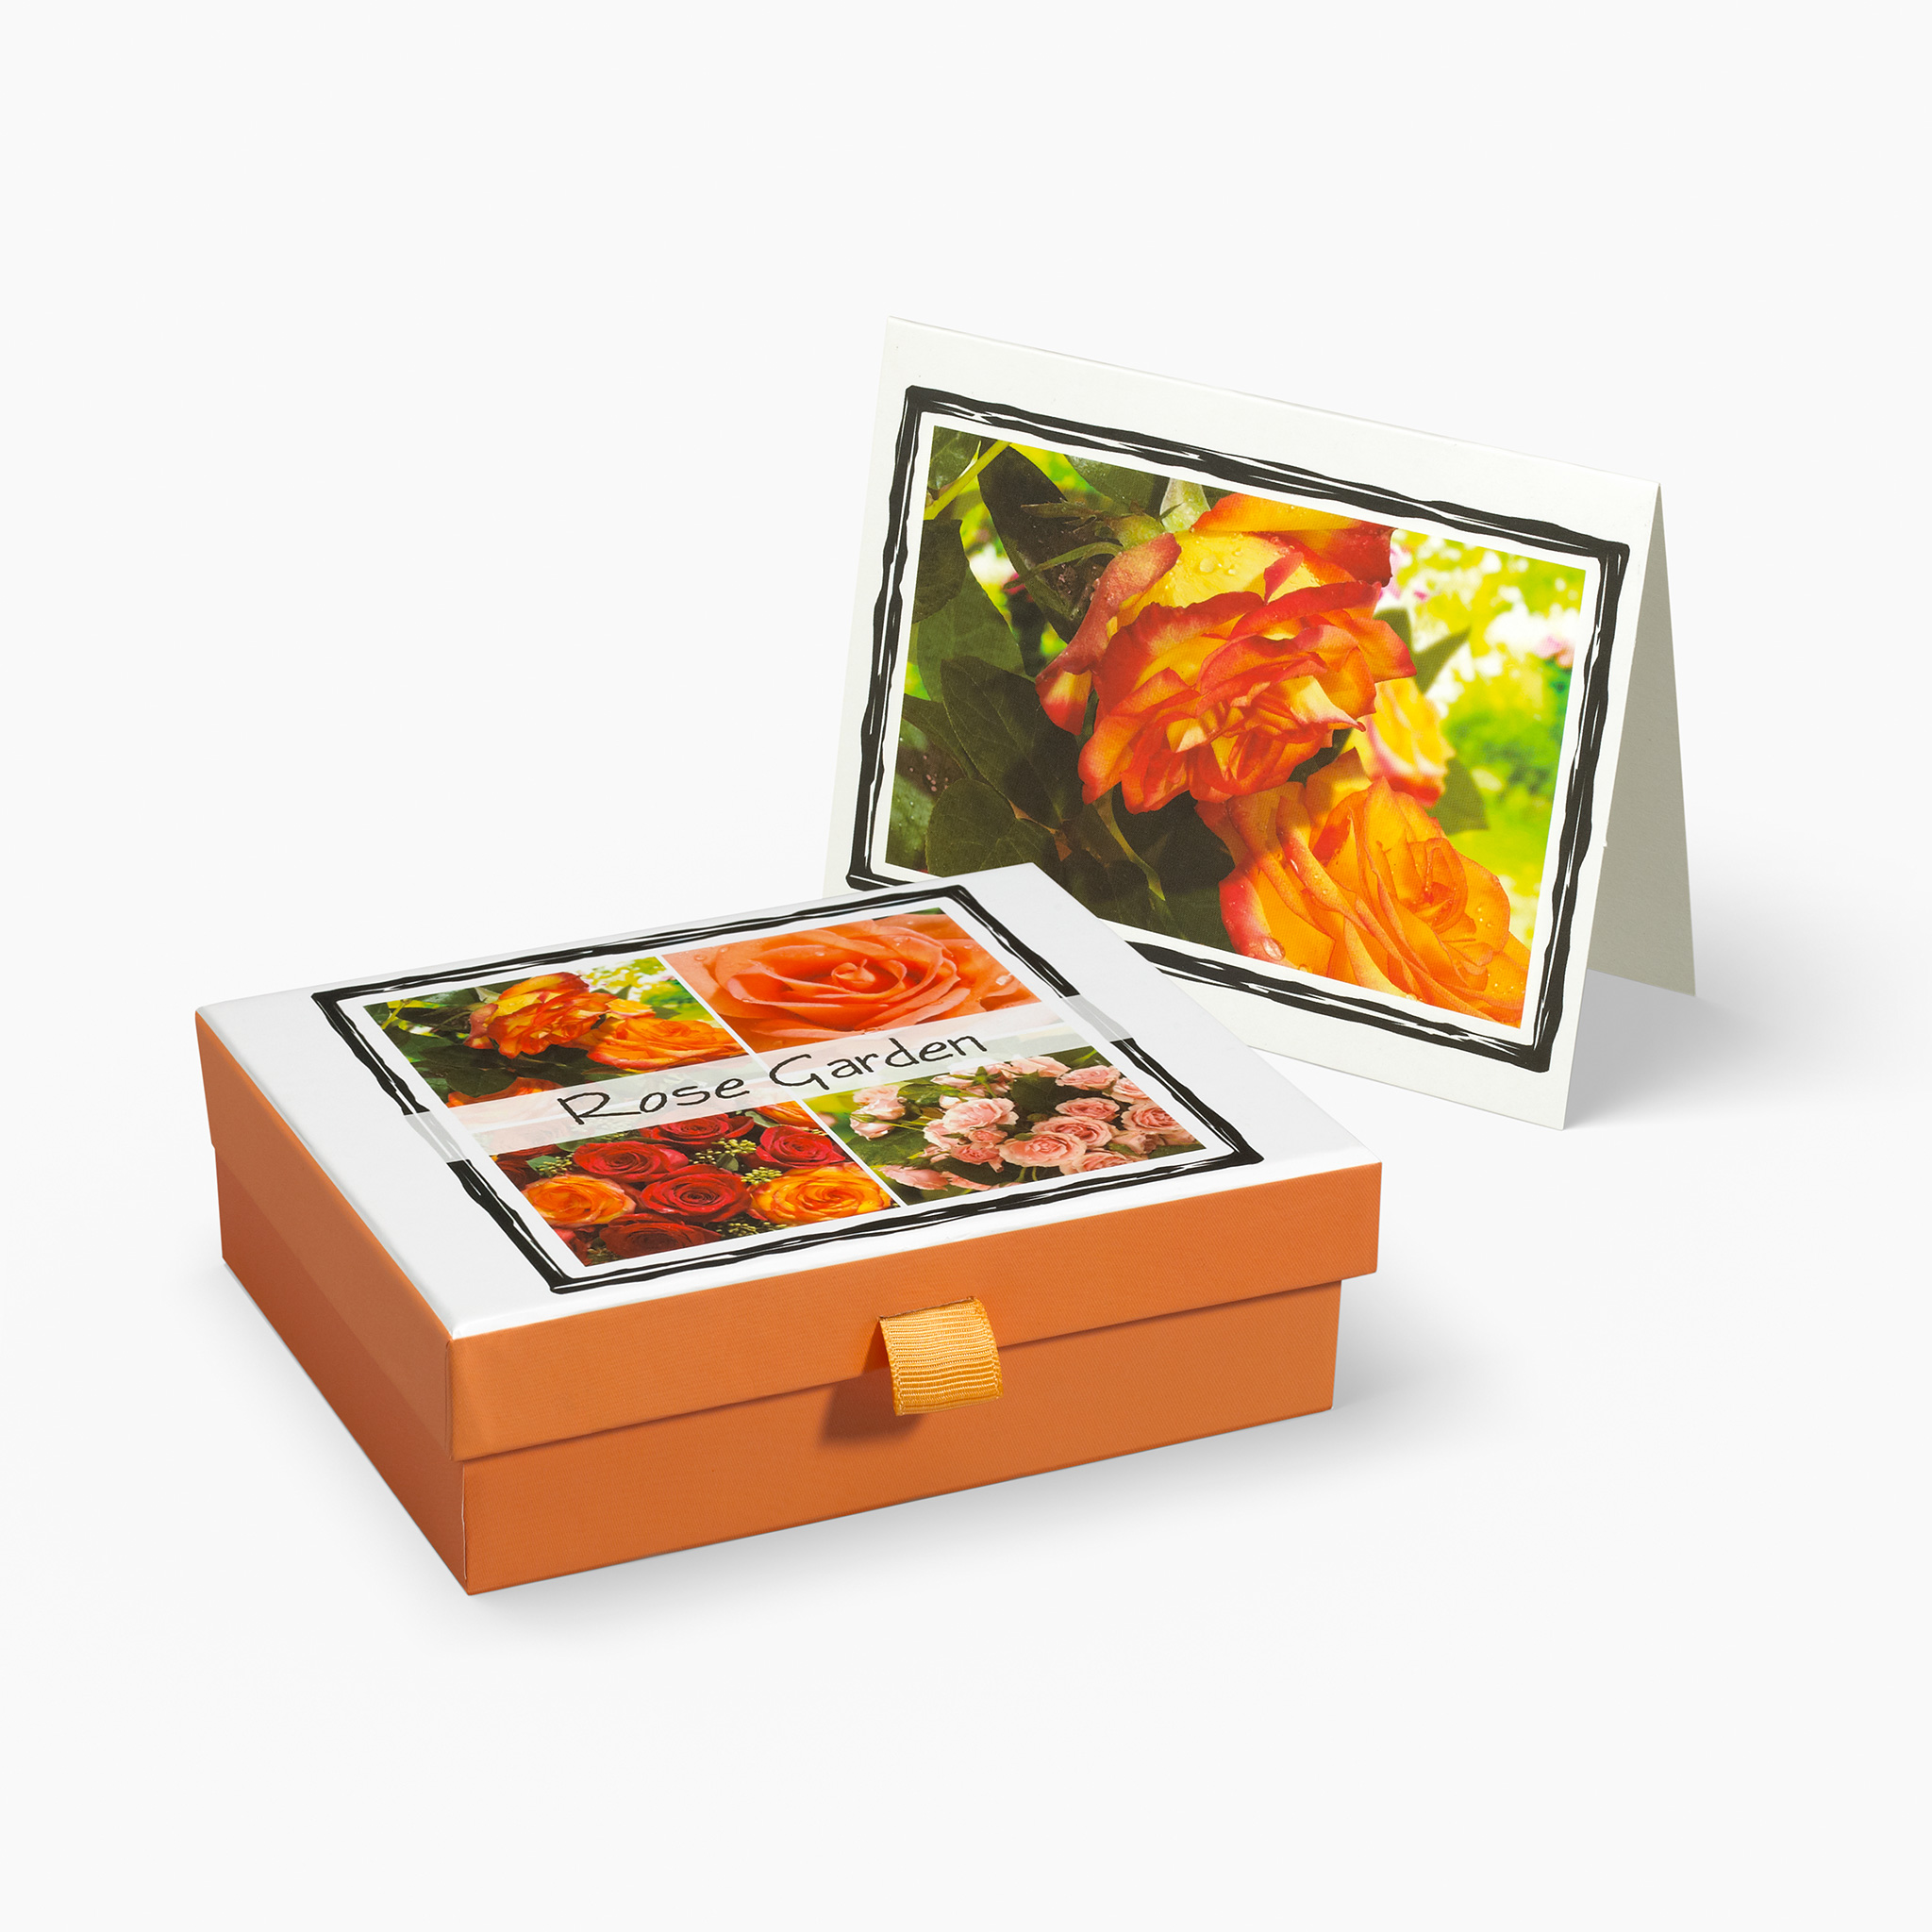 Nabila K's Rose Garden Card and Envelope Stationary with a box holding the cardss